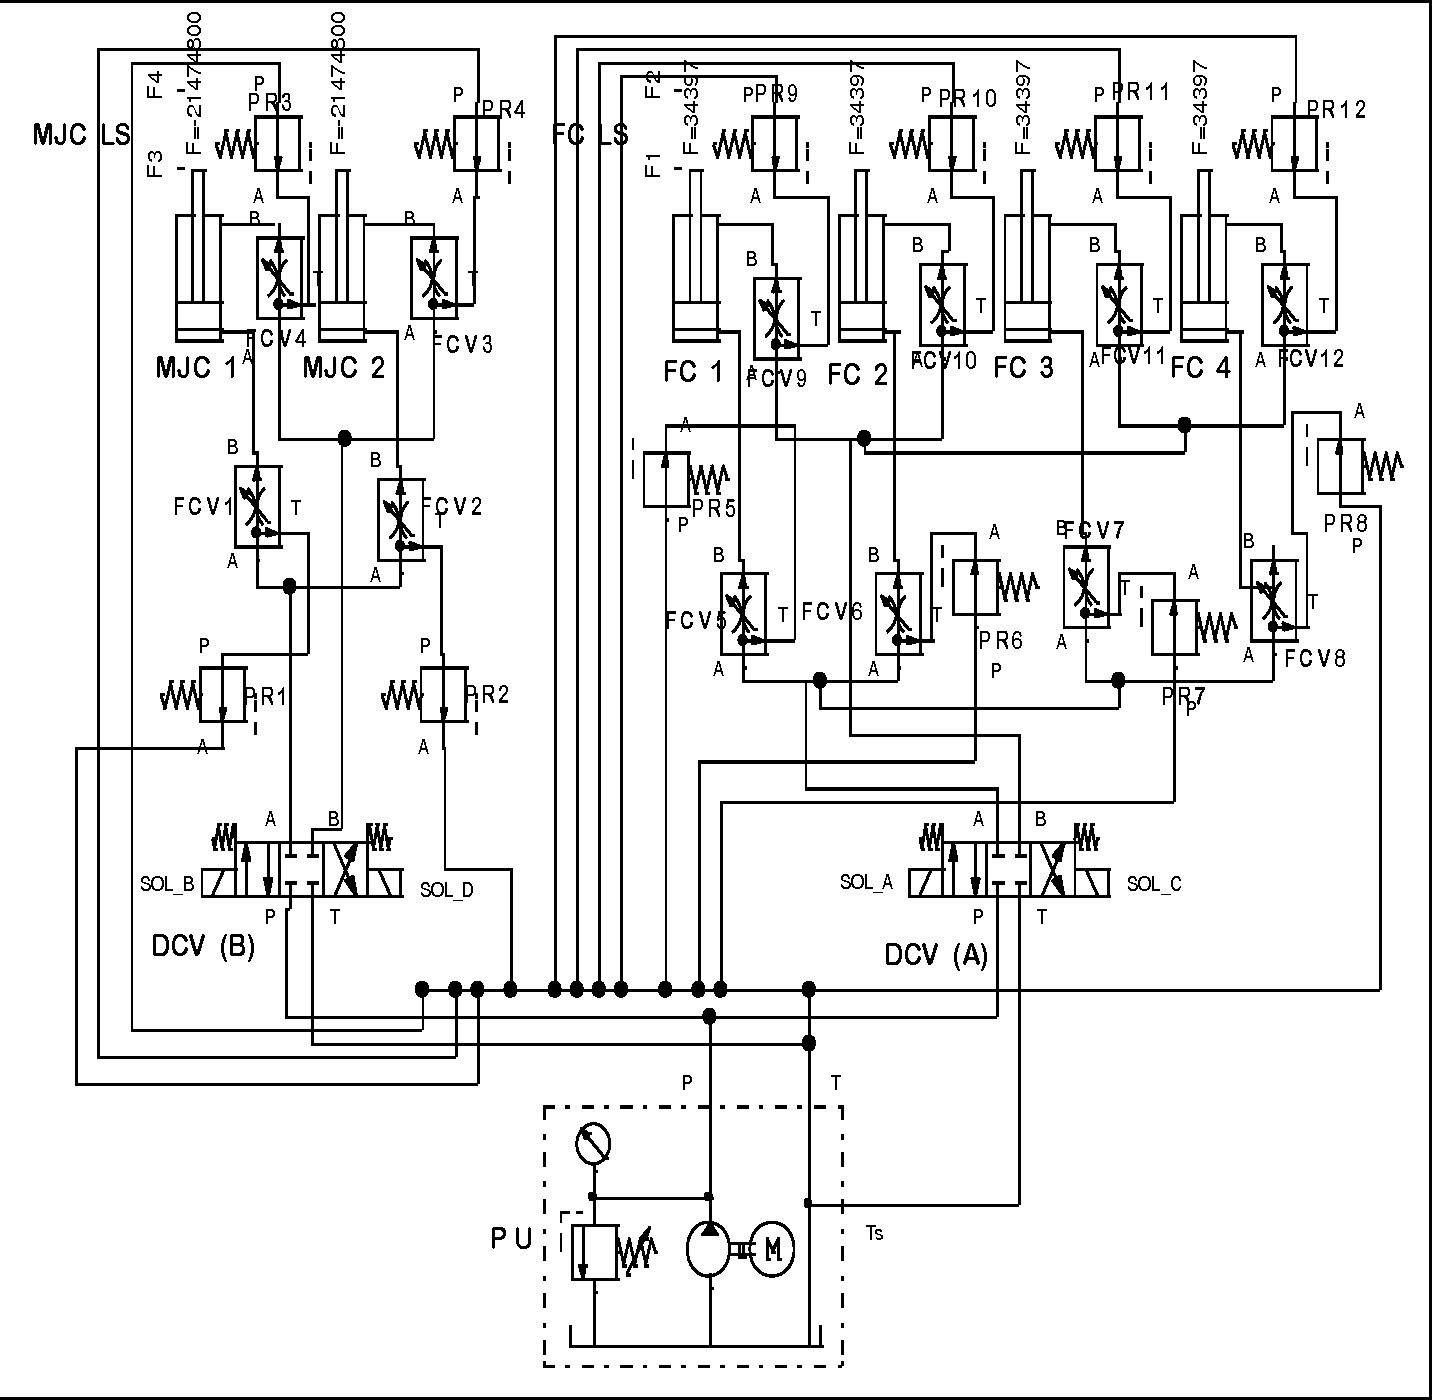 Programmable Logic Control Of An Electro Hydraulic System For A Diagram Figure 1